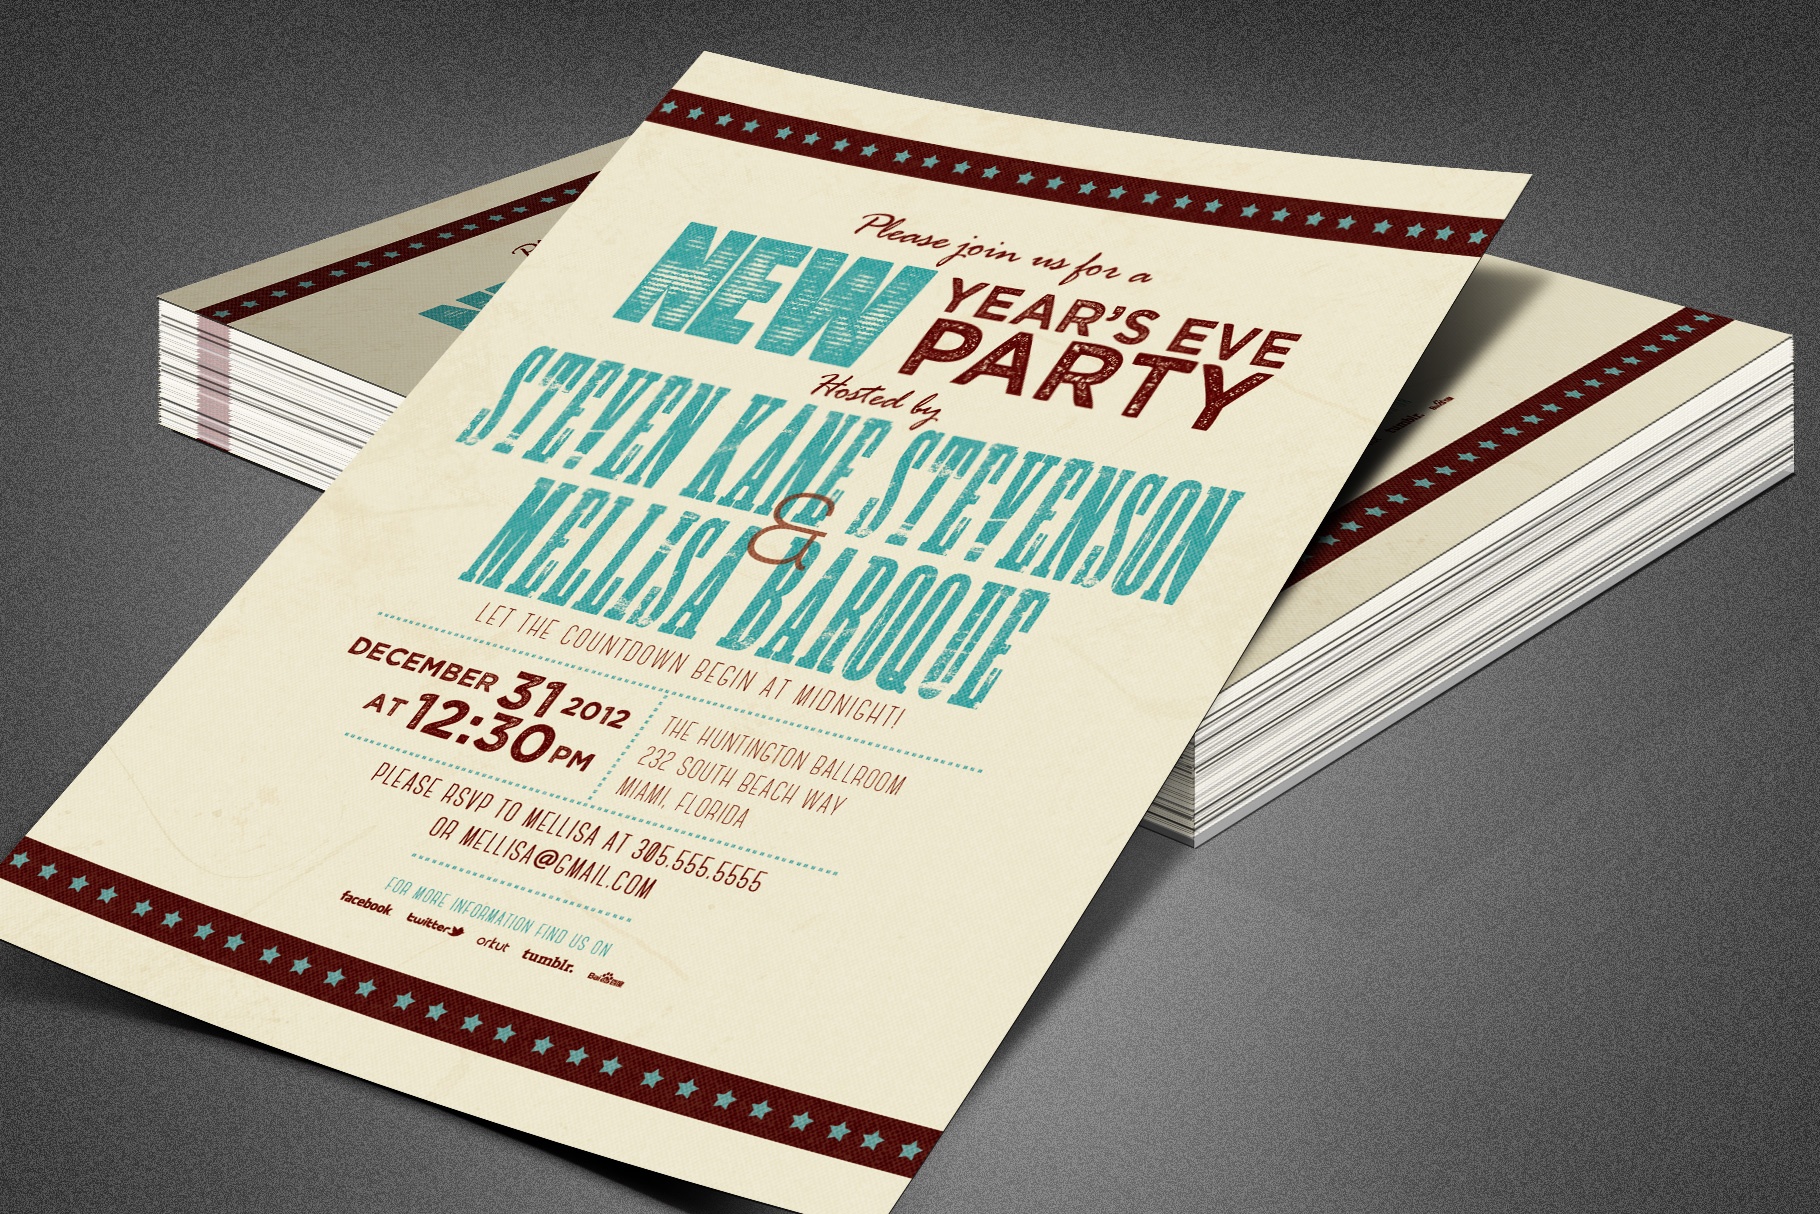 Retro New Year Party Invite Card Template example image 4